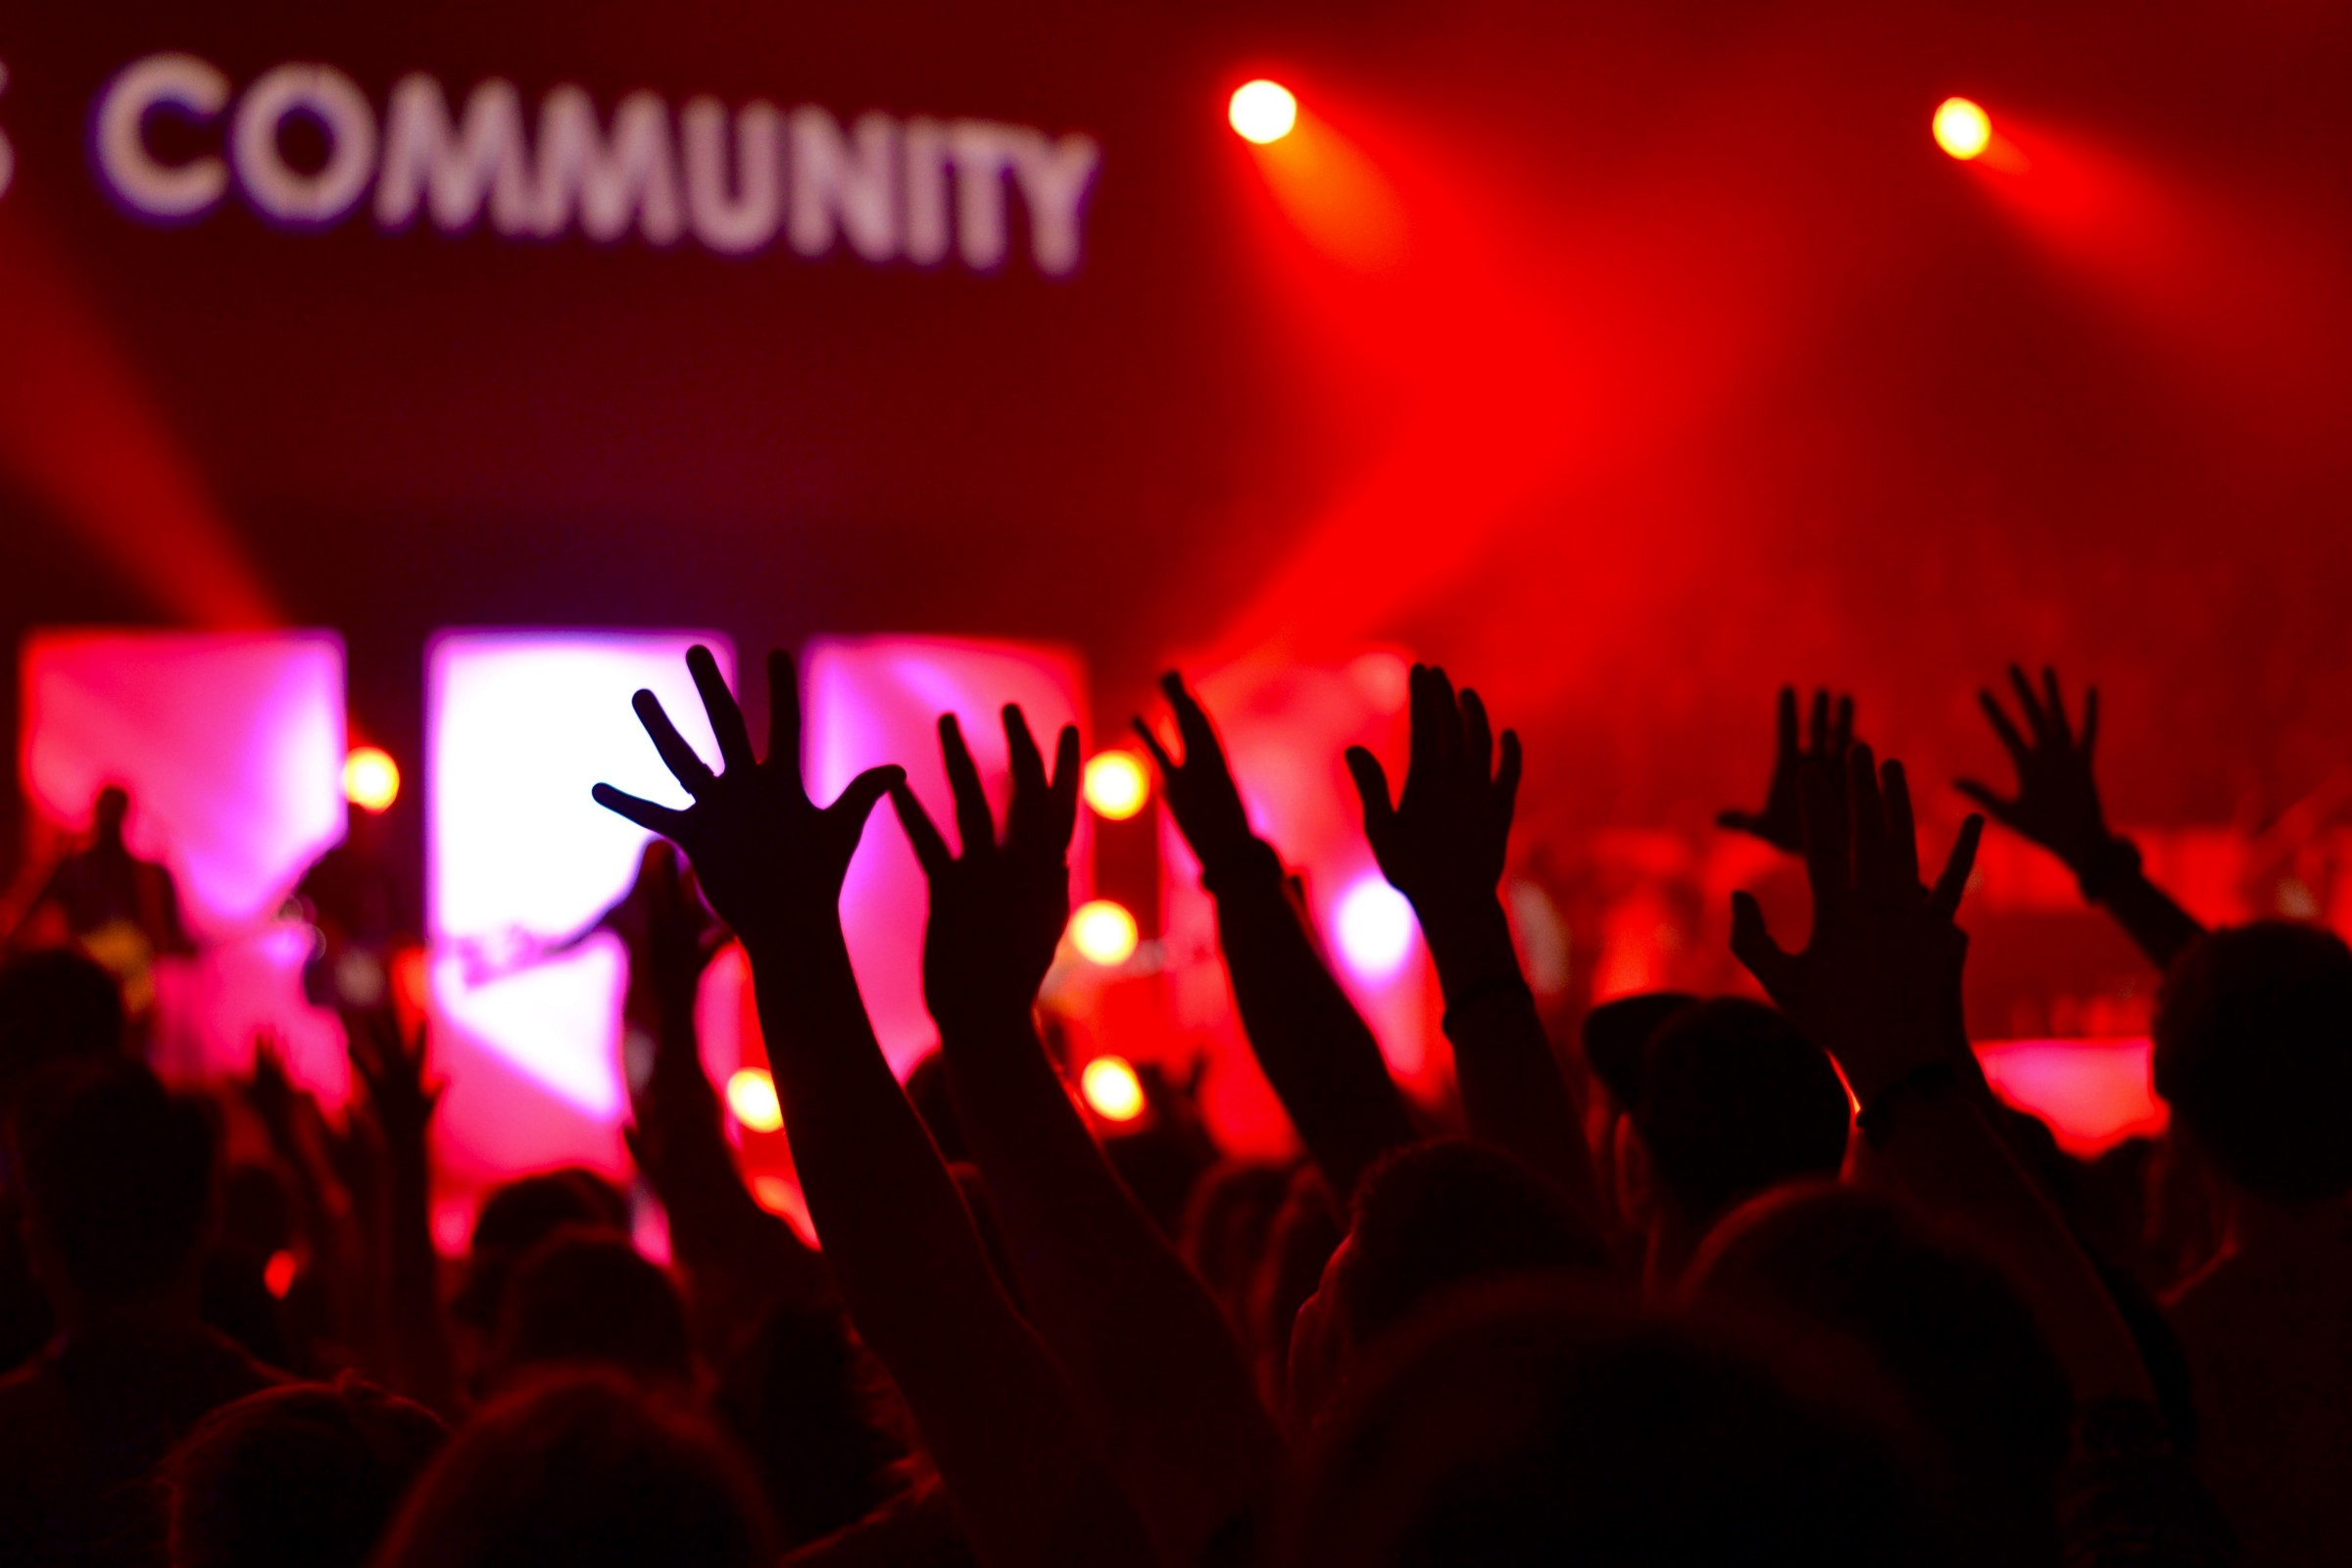 /how-to-move-crowds-or-all-about-community-management-27e56cceb7dc feature image